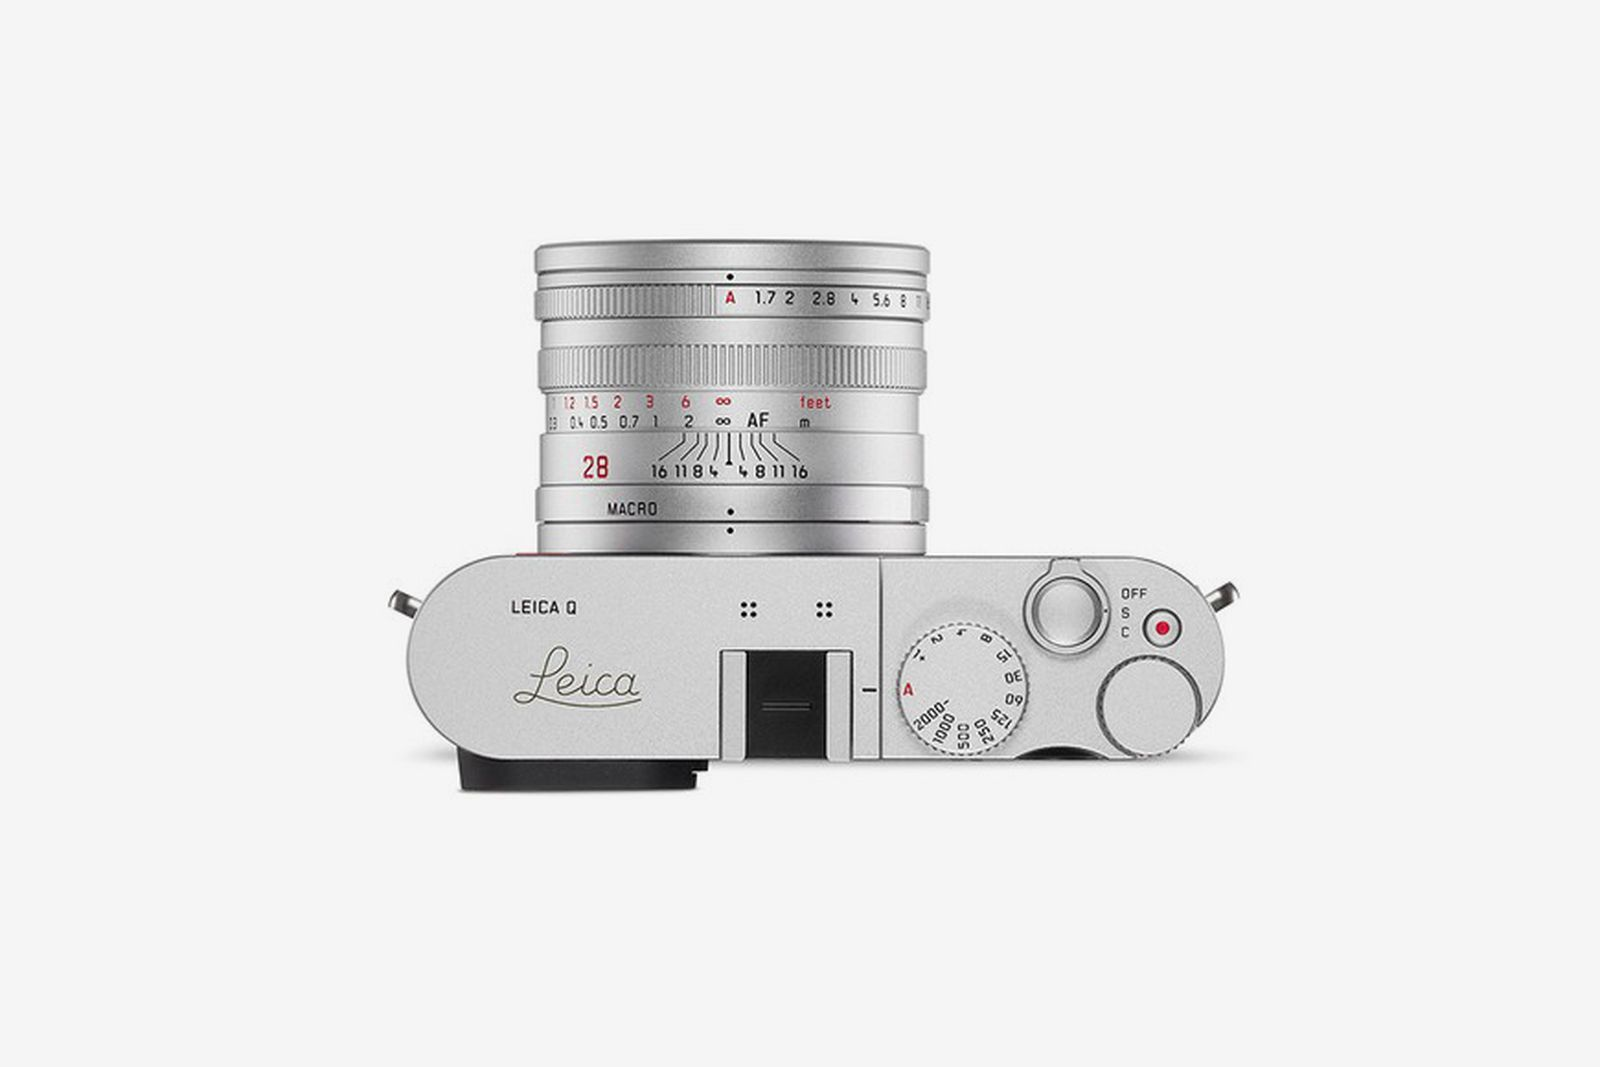 Leica Launches 4 995 Limited Edition Q Khaki Camera